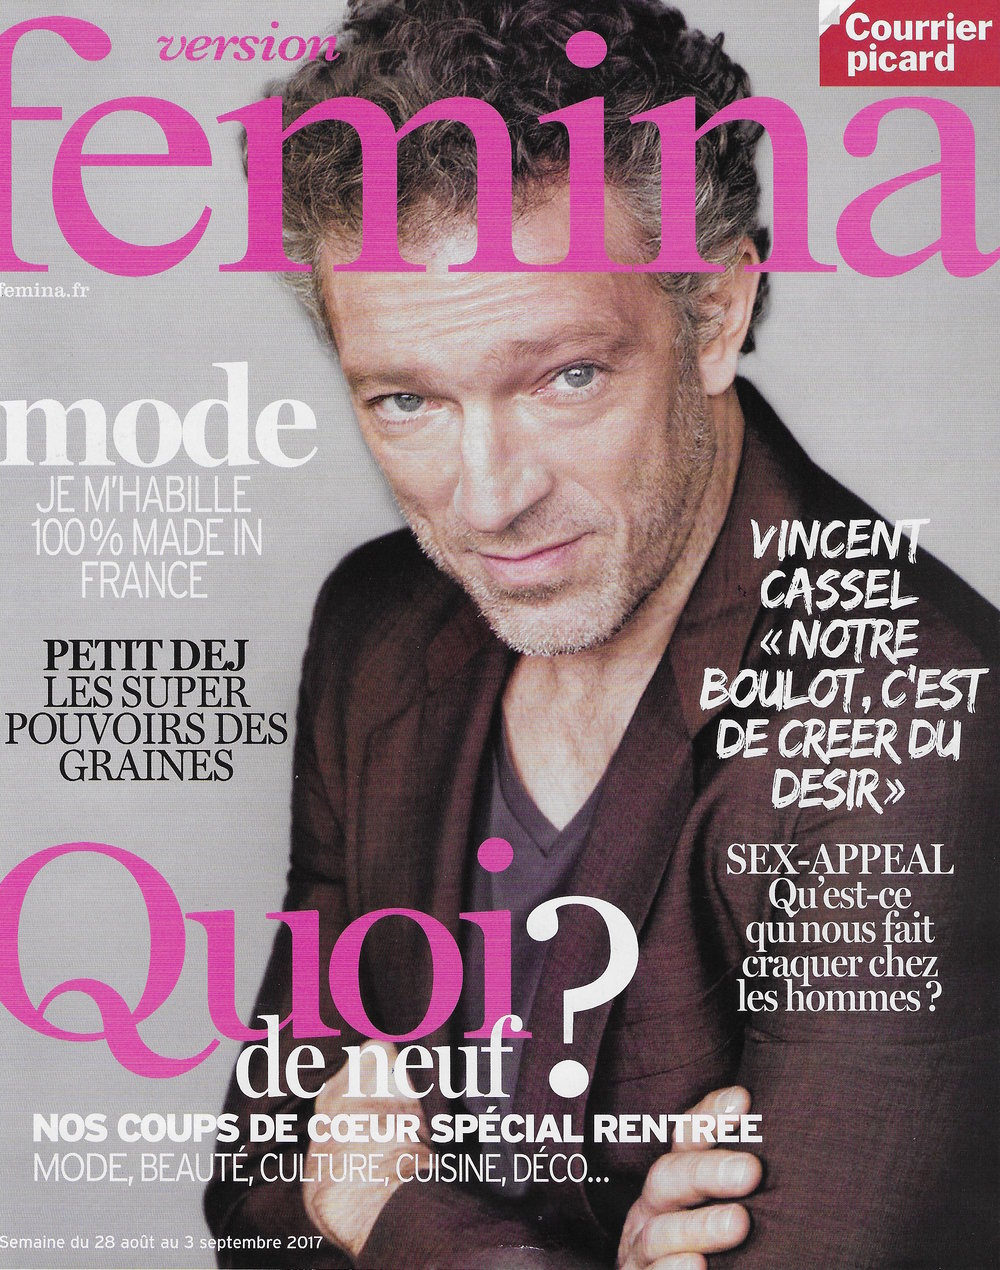 Version Femina - 28 Aout au 3 septembre 2017 - Couv.jpeg